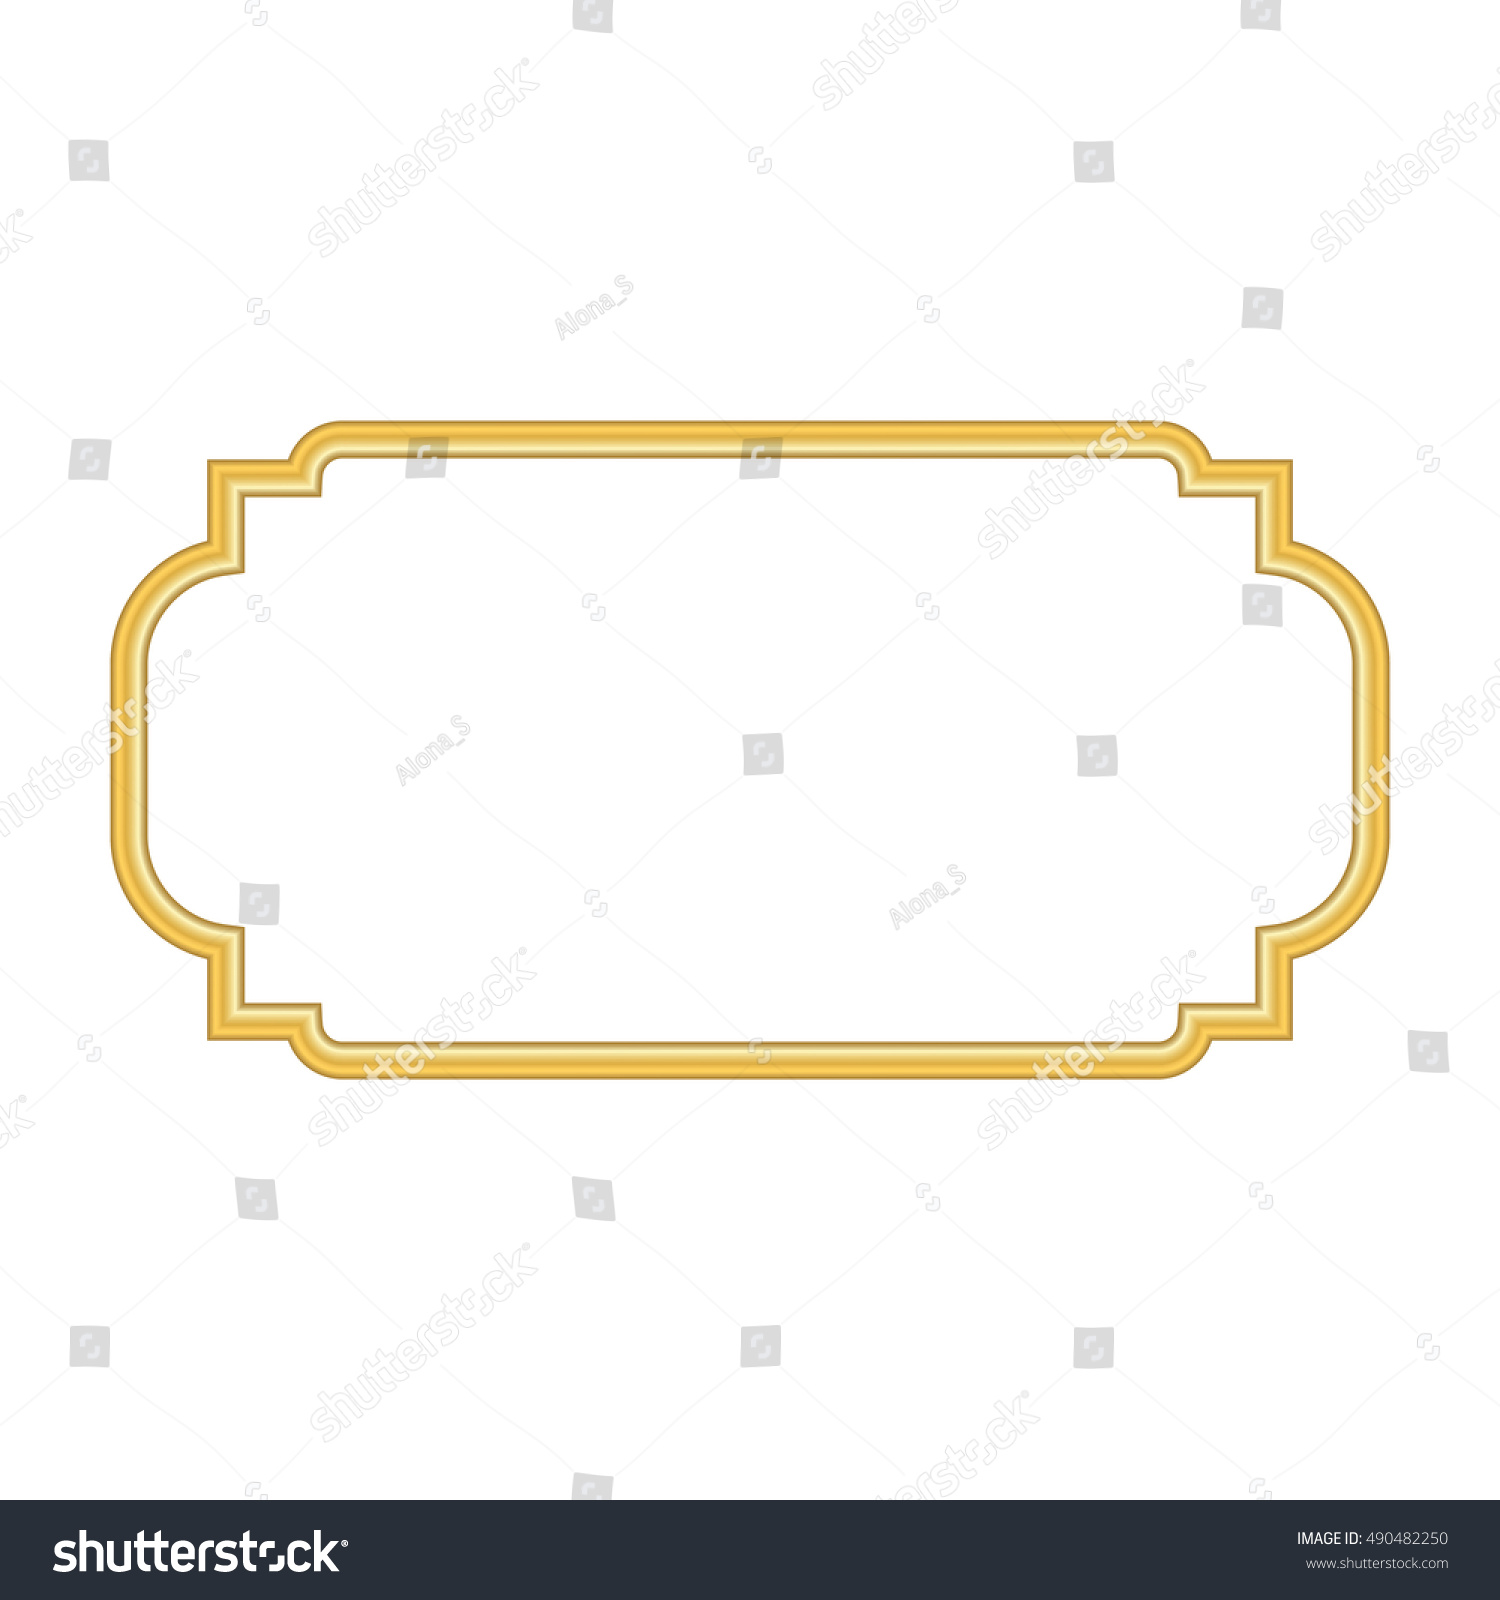 Gold Frame Beautiful Simple Golden Design Vintage Decorative Border Isolated On White Background